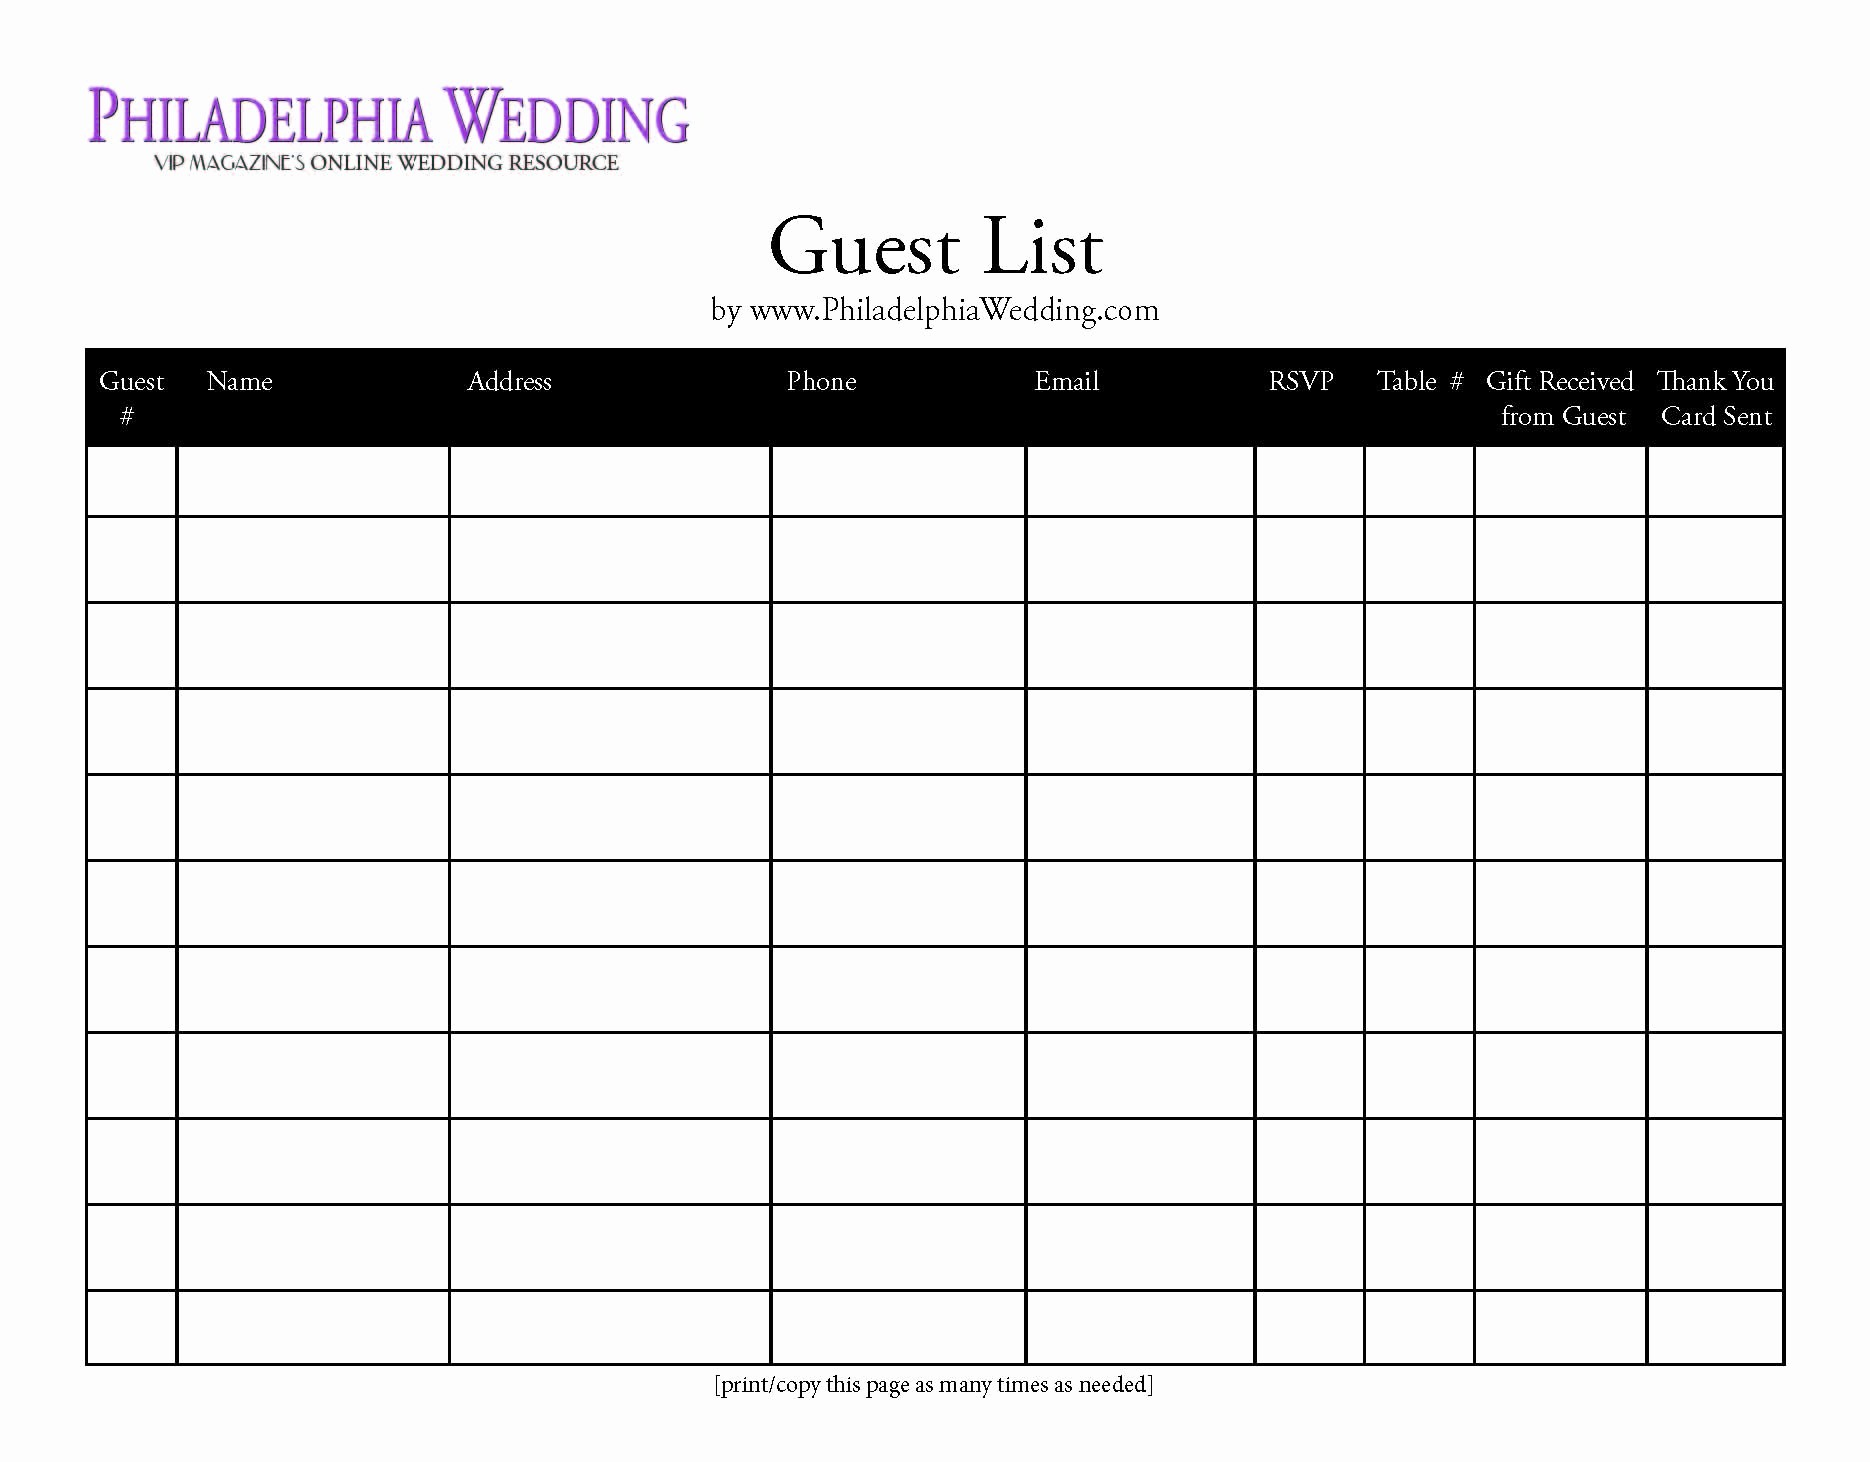 Wedding Guest List Worksheet Printable Luxury Pin Wedding Bud Worksheet On Pinterest